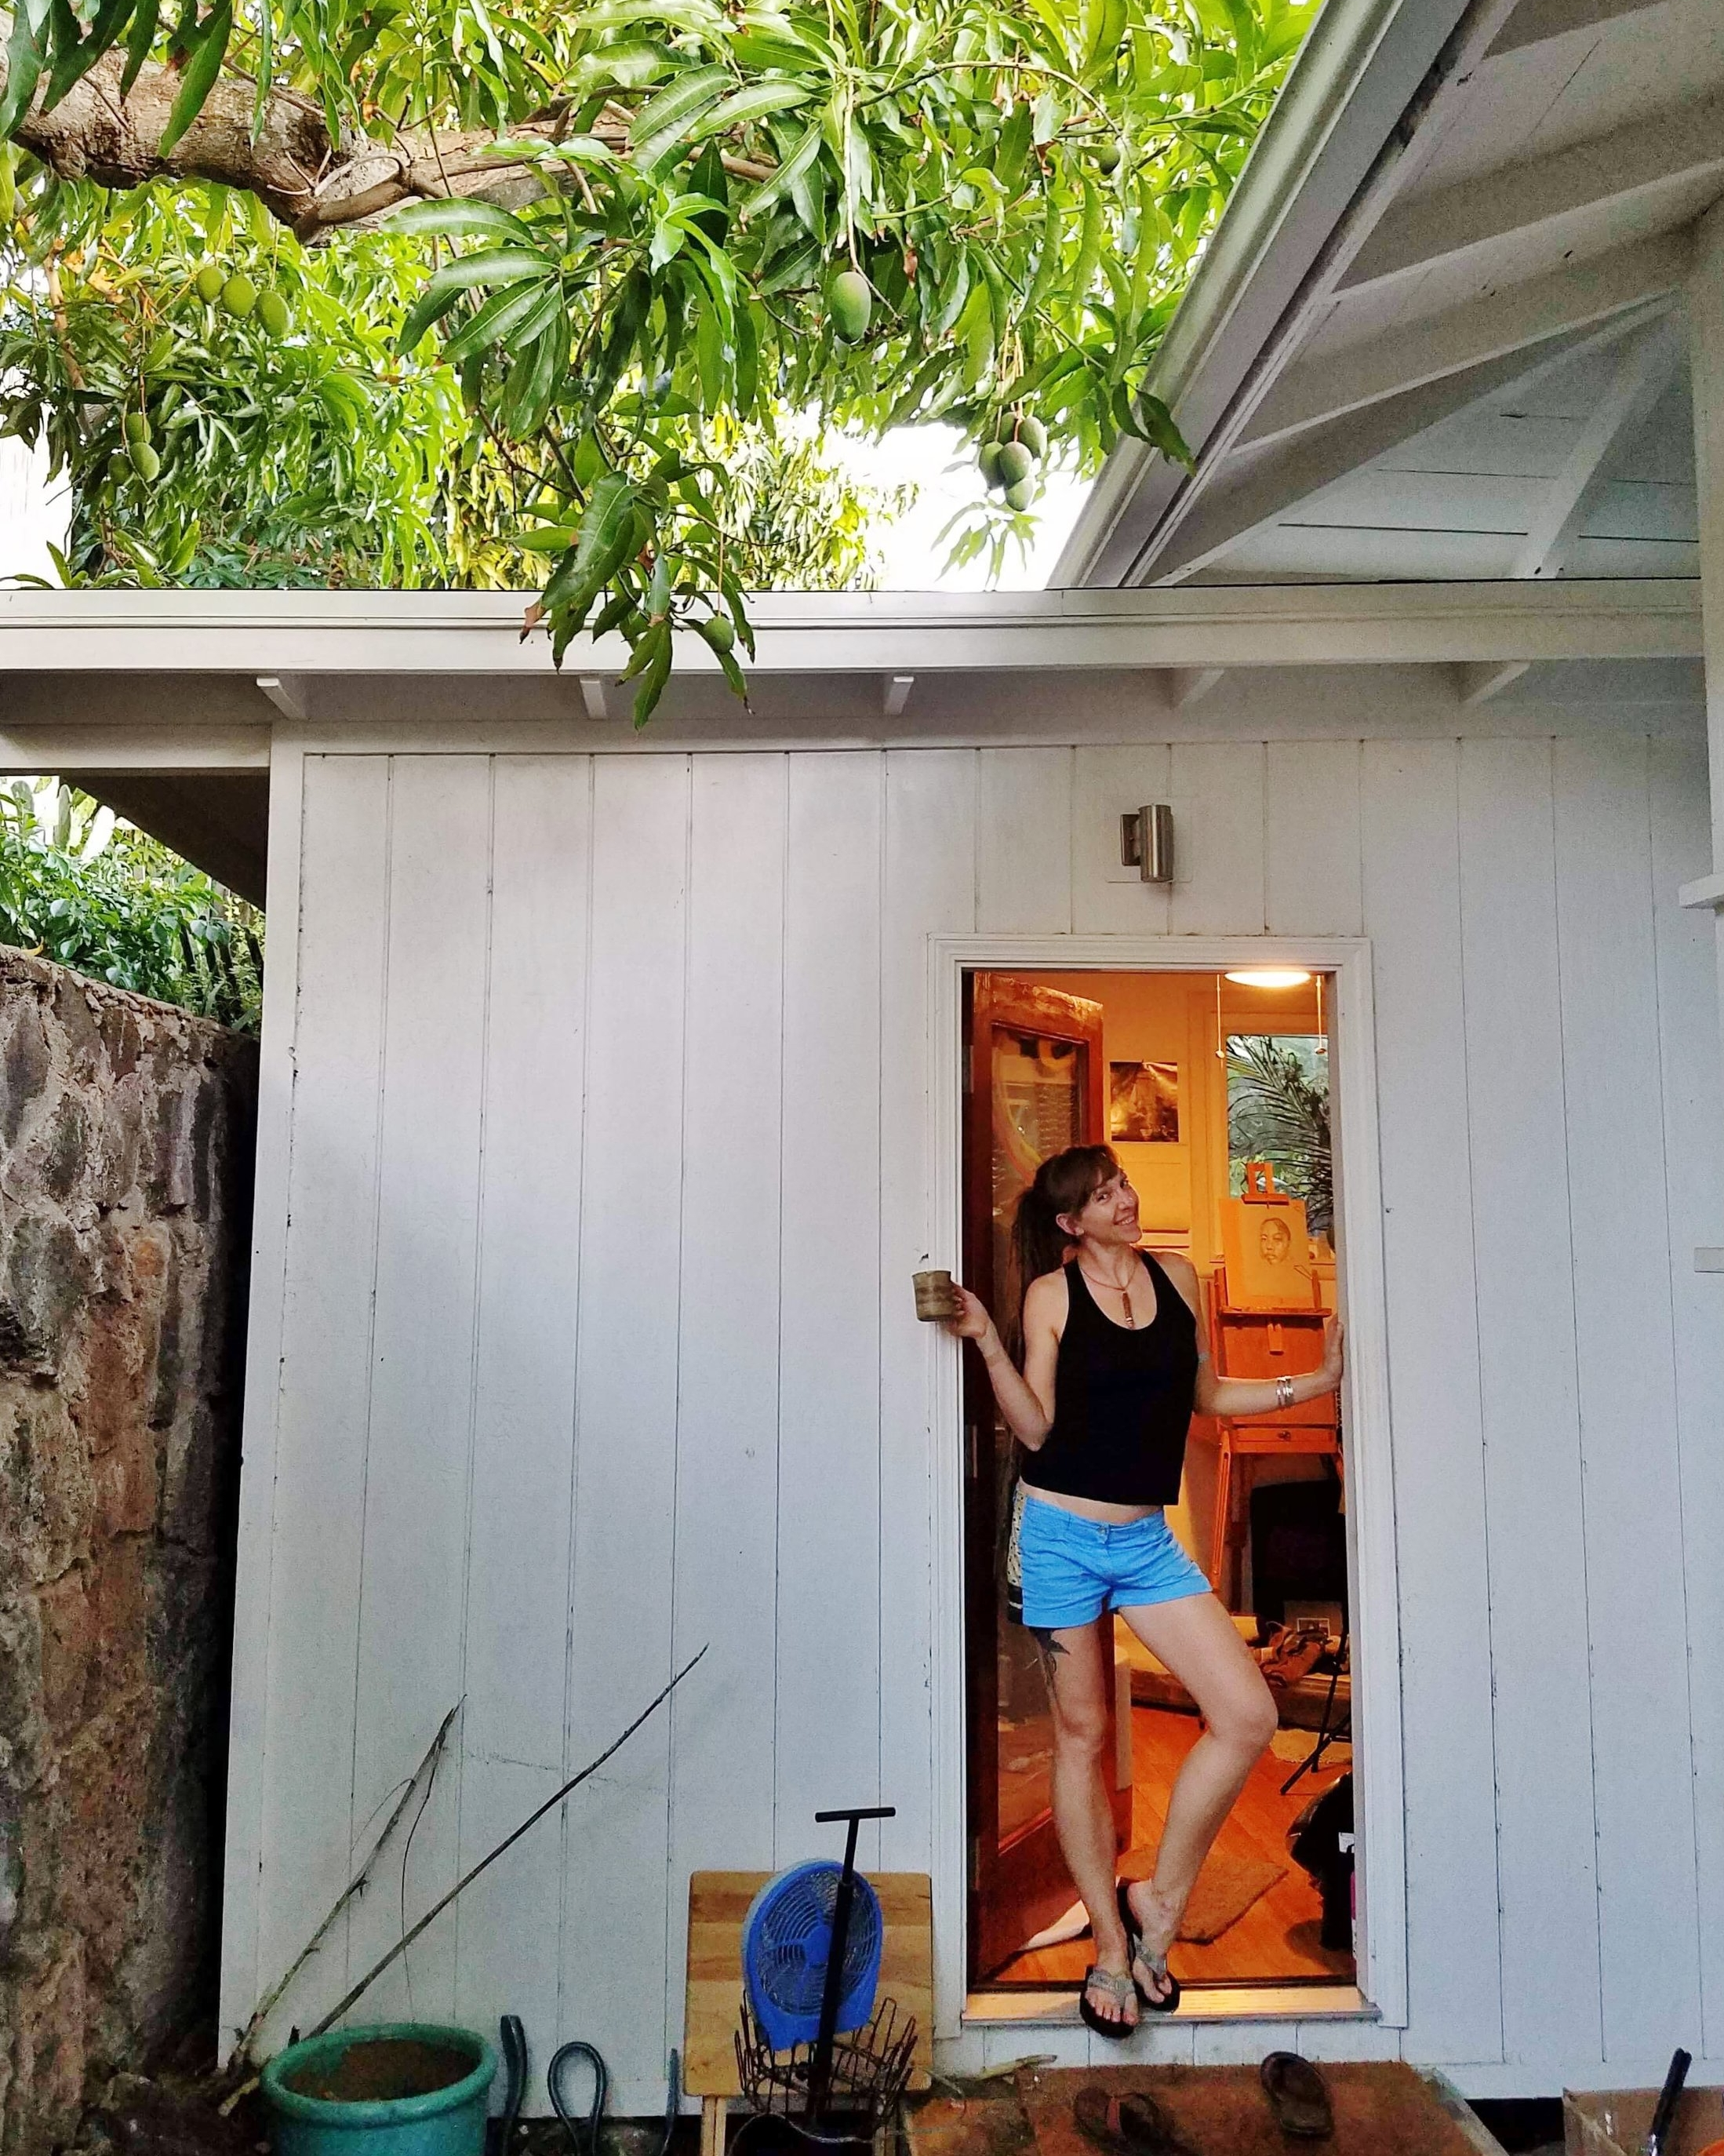 New Studio Sneak Peek - Happy Aloha Friday friends! I'm really excited to welcome you as one of the very first to see my brand new bungalow studio....